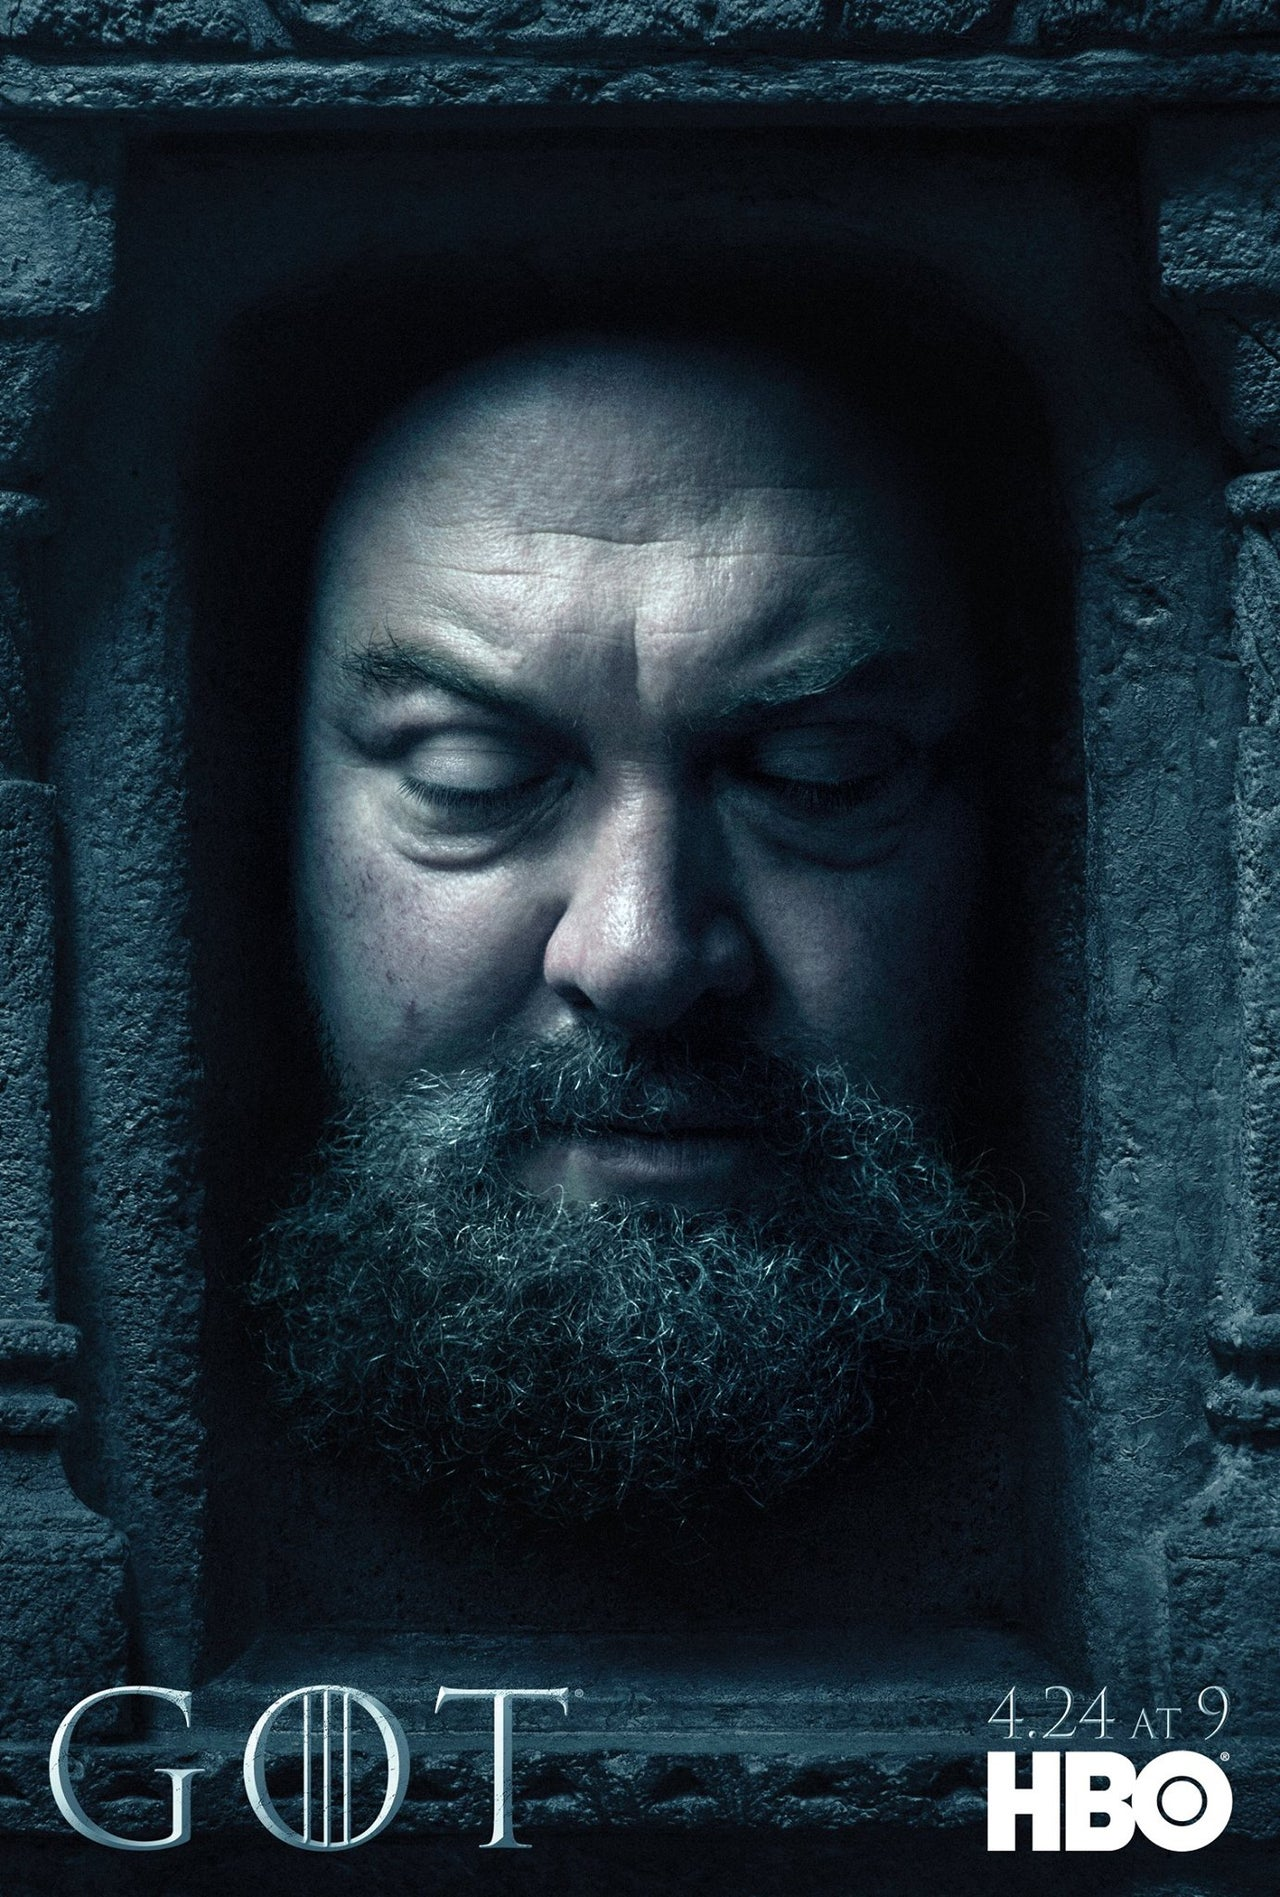 Game of Thrones: Season 6 Character Poster Puts Catelyn Stark Front and Center - IGN